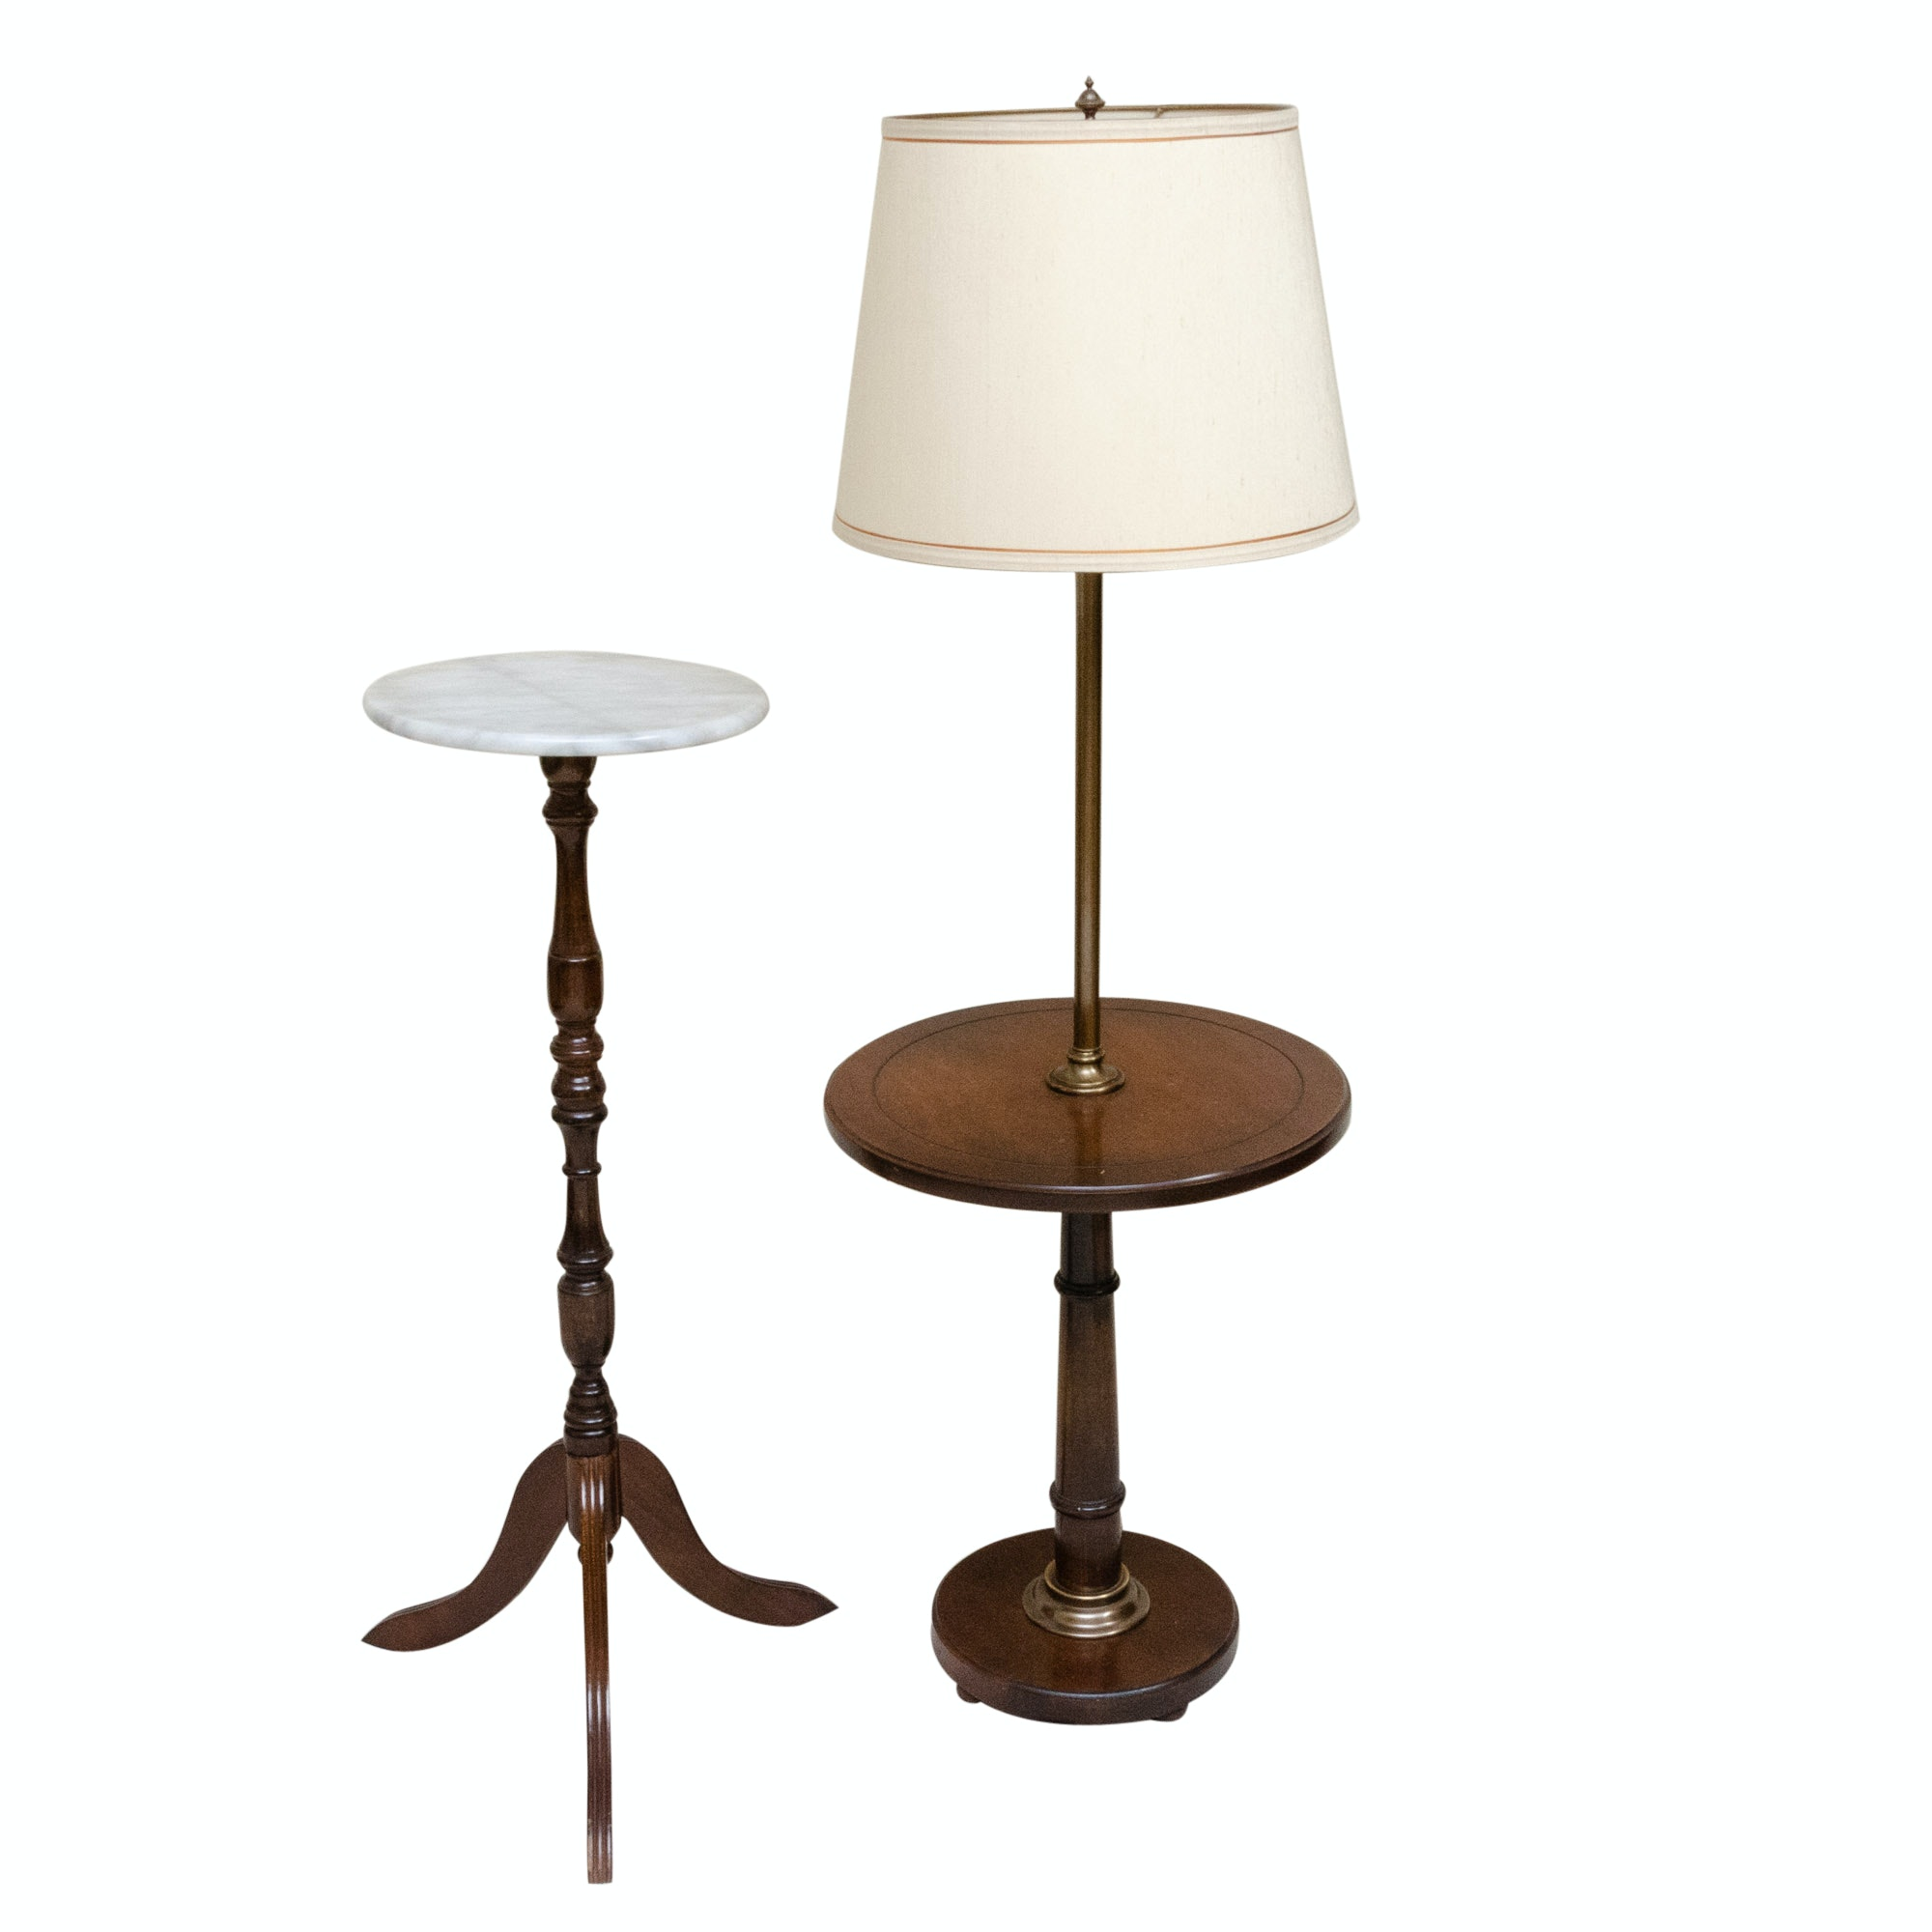 Vintage Wooden Side Table Floor Lamp and Marble Top Pedestal Table